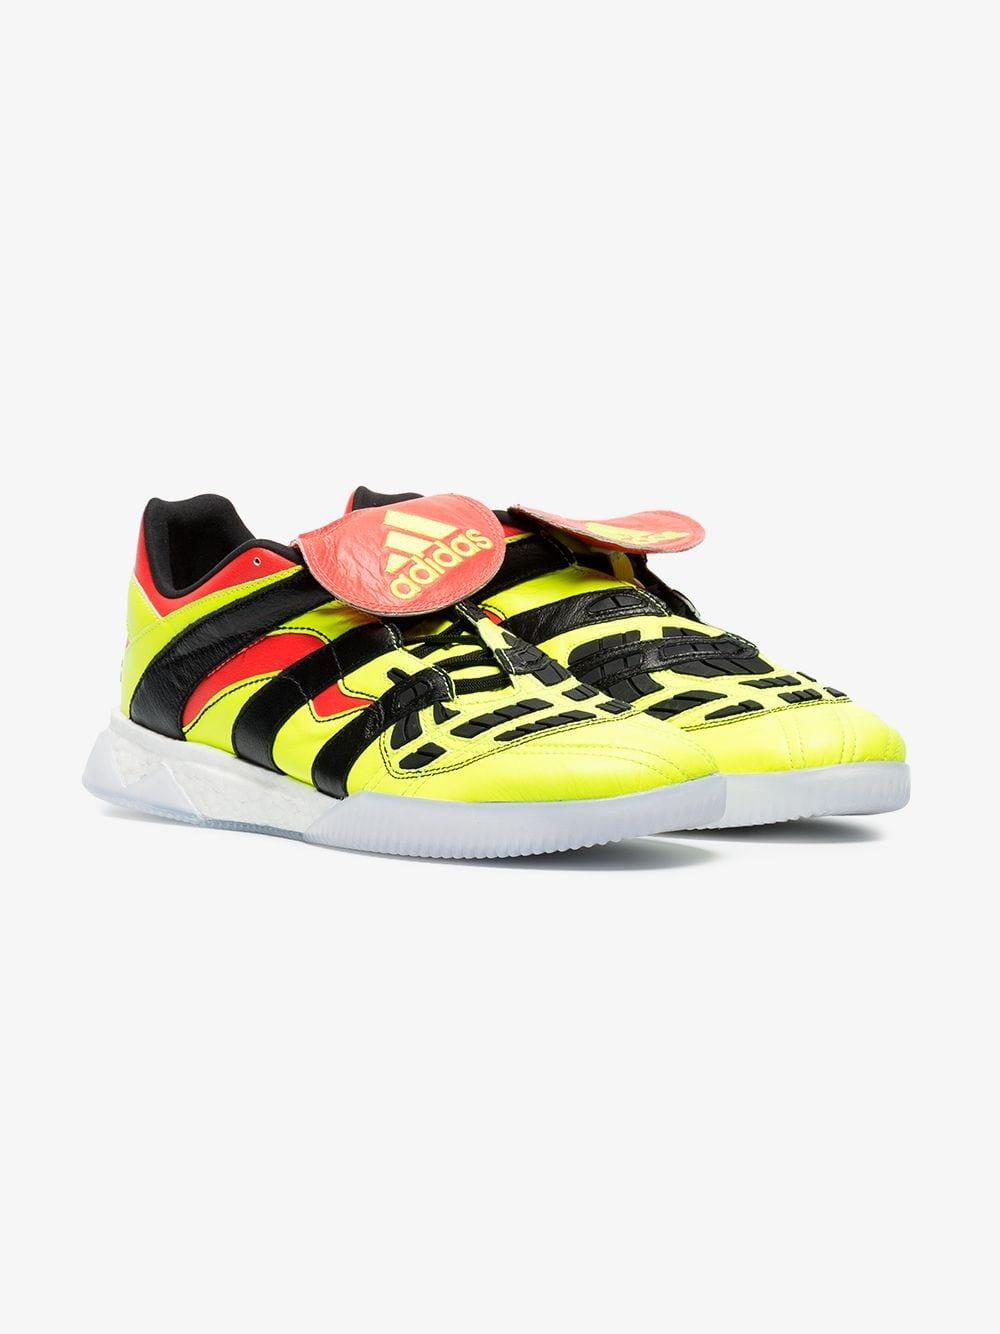 4f45f8fef adidas Yellow, Black And Red Predator Accelerator Trainer in Yellow ...